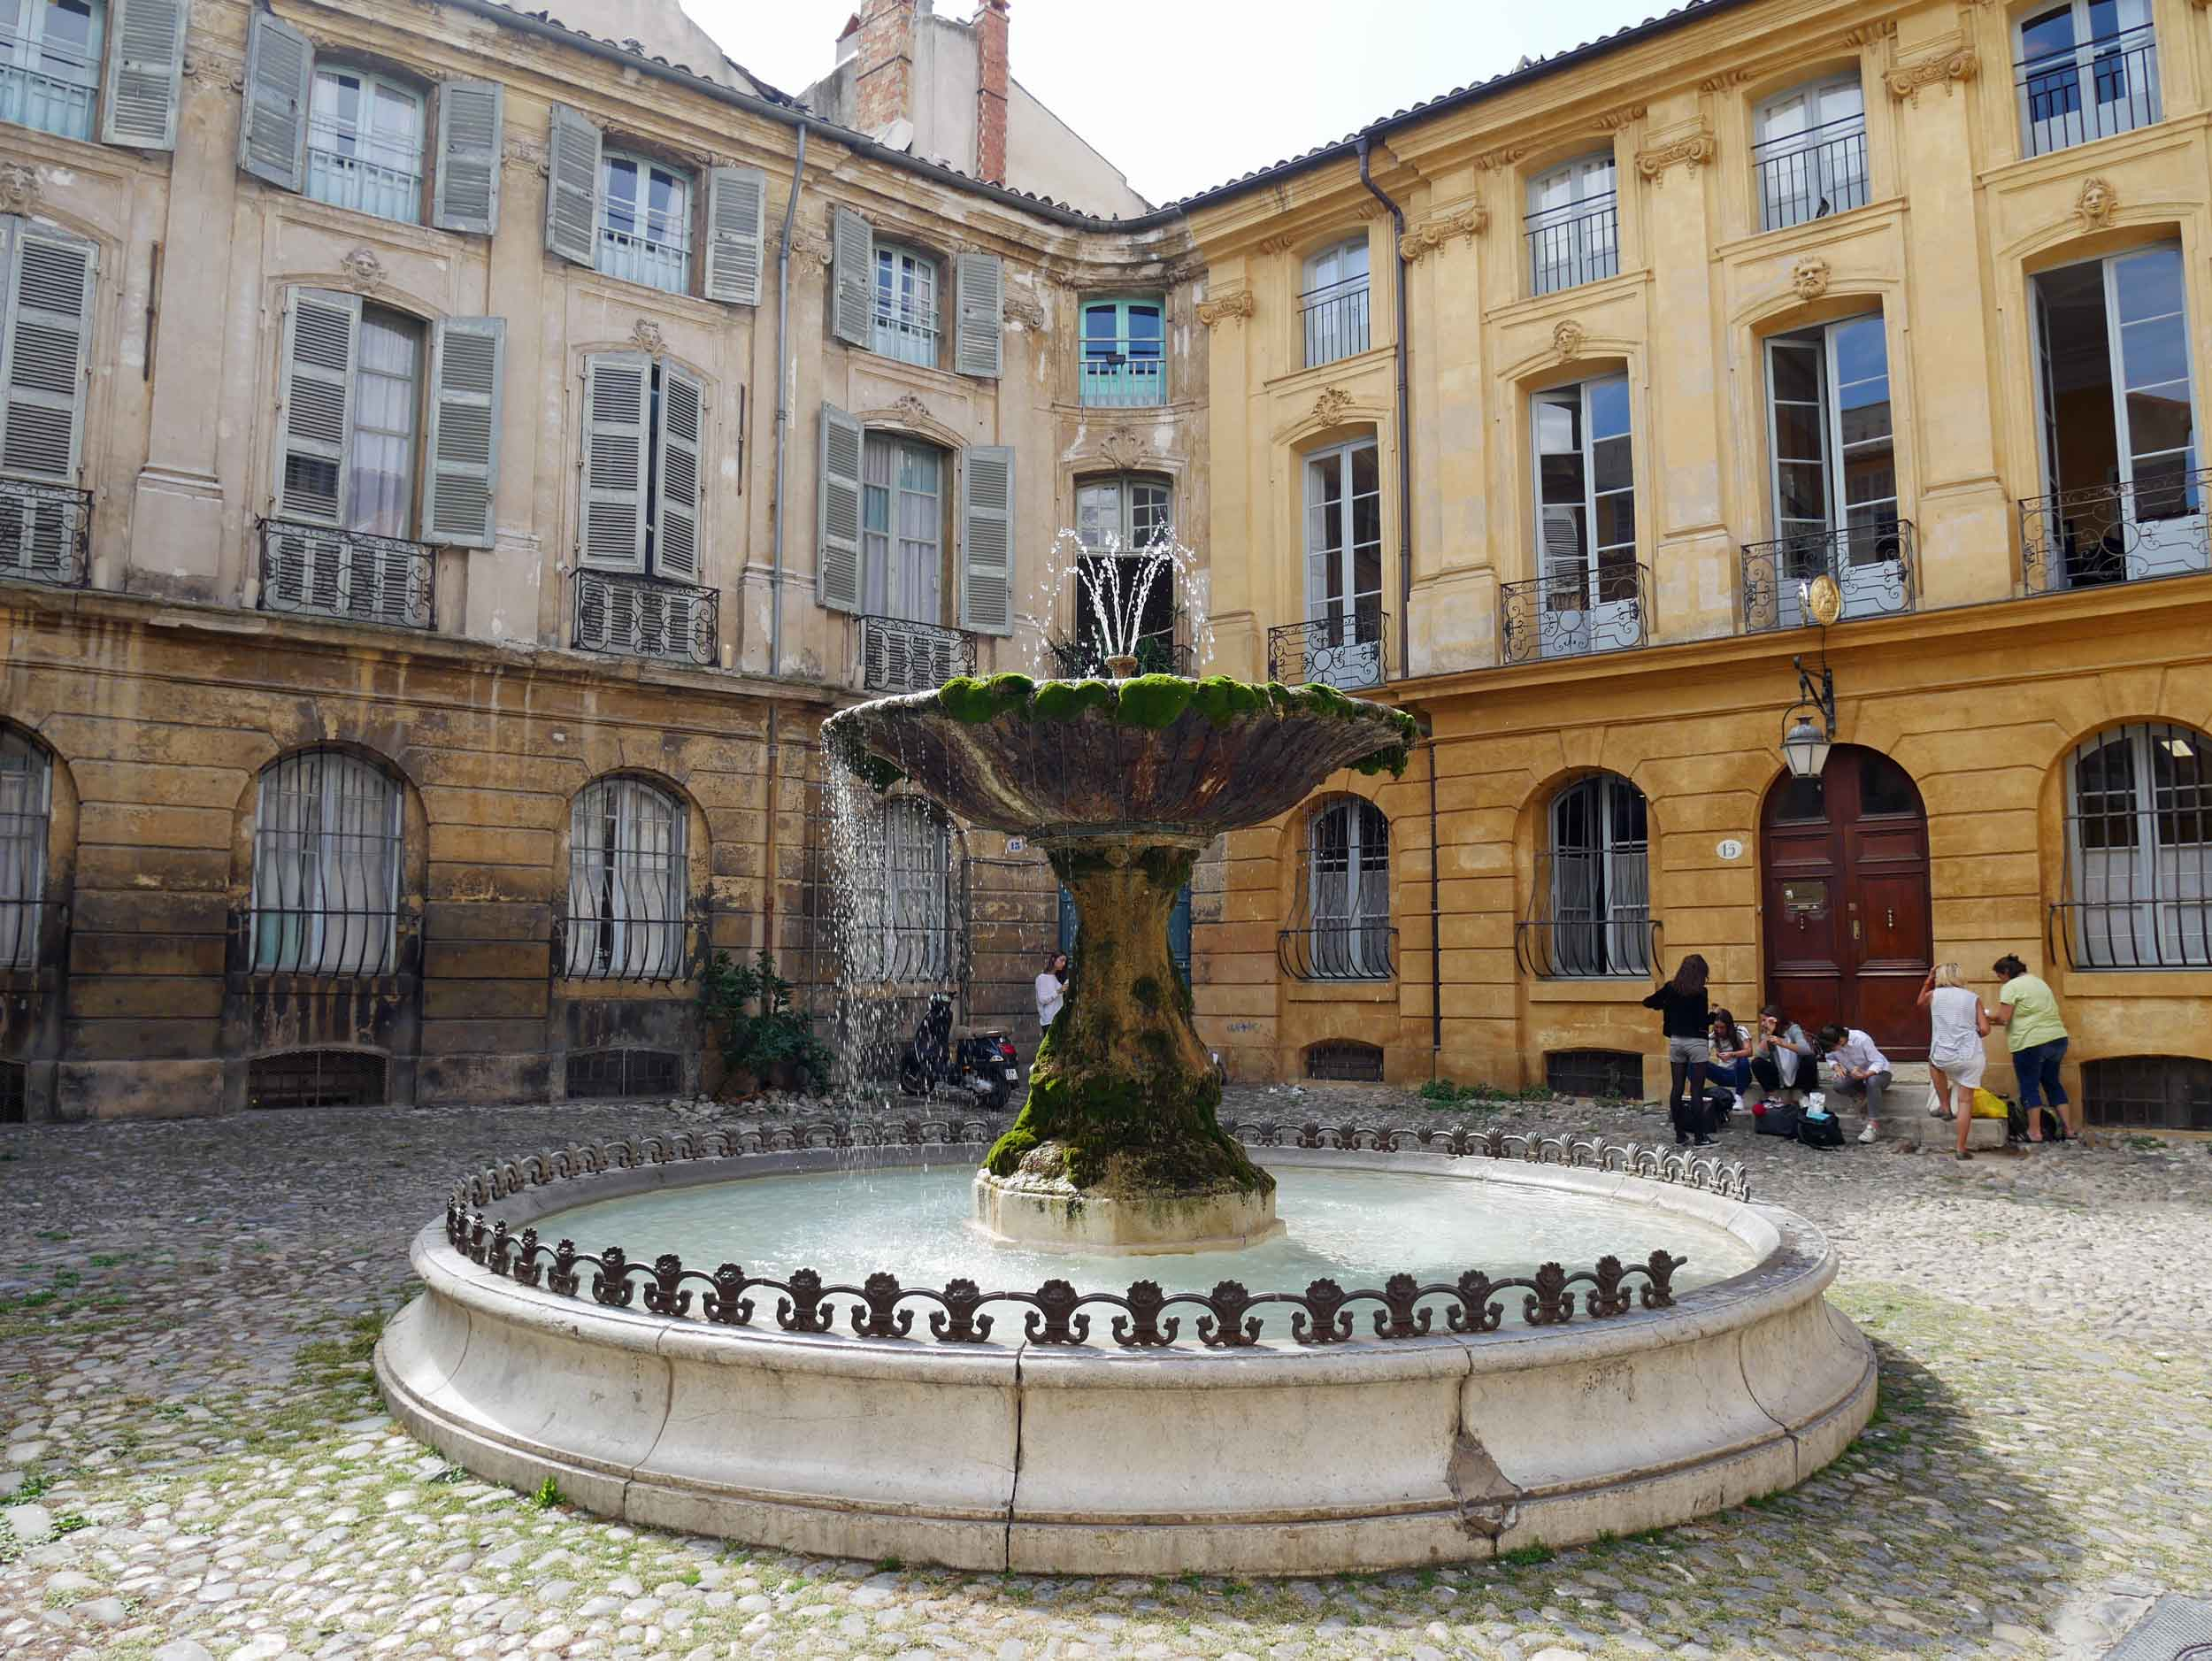 The Prêcheurs-Madeleine-Verdun complex of squares in the Old Town has been completely renovated and pedestrianized allowing visitors to wander without worry while taking in the beauty of this ancient once Roman town.